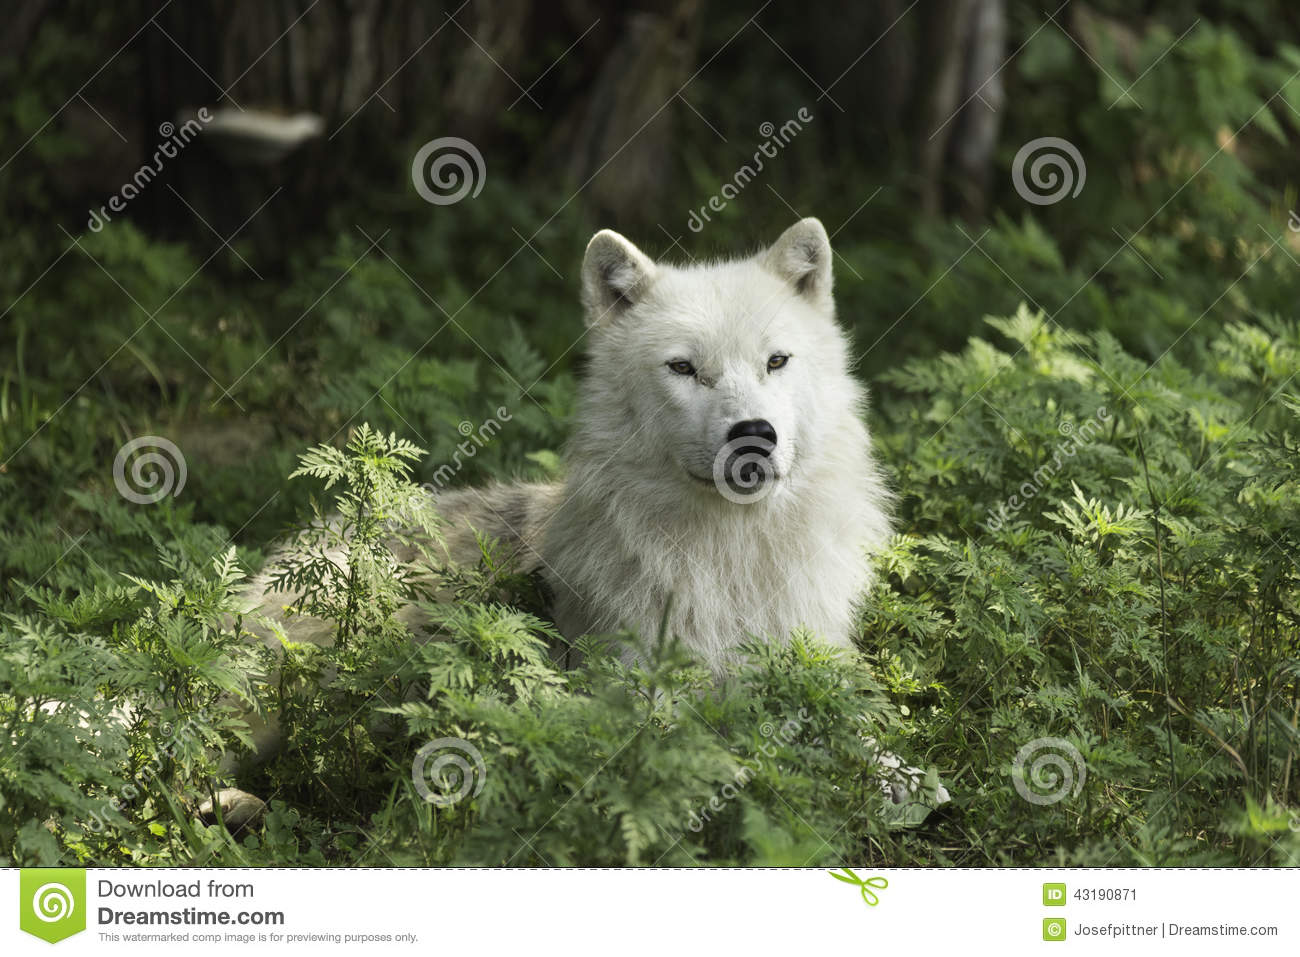 A lone Arctic wolf resting in a shaded area